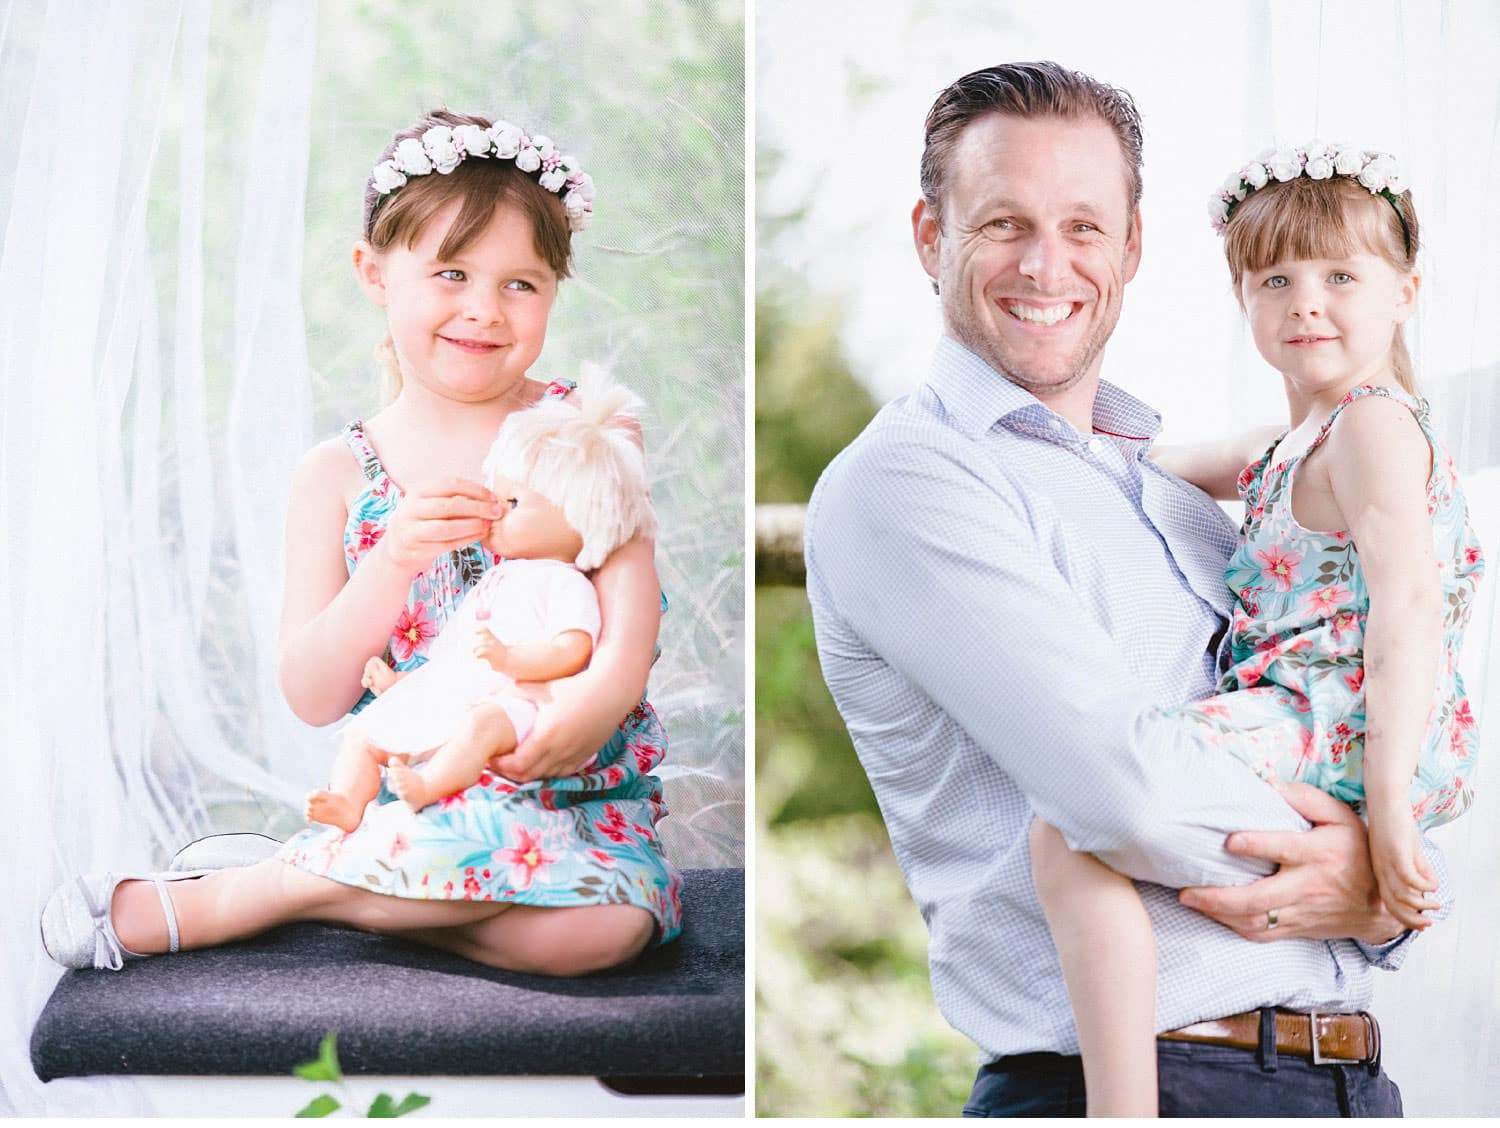 knivtsa stockholm familjefotografering lifestyle portrait 13 - Love & Happiness portrait, family-session